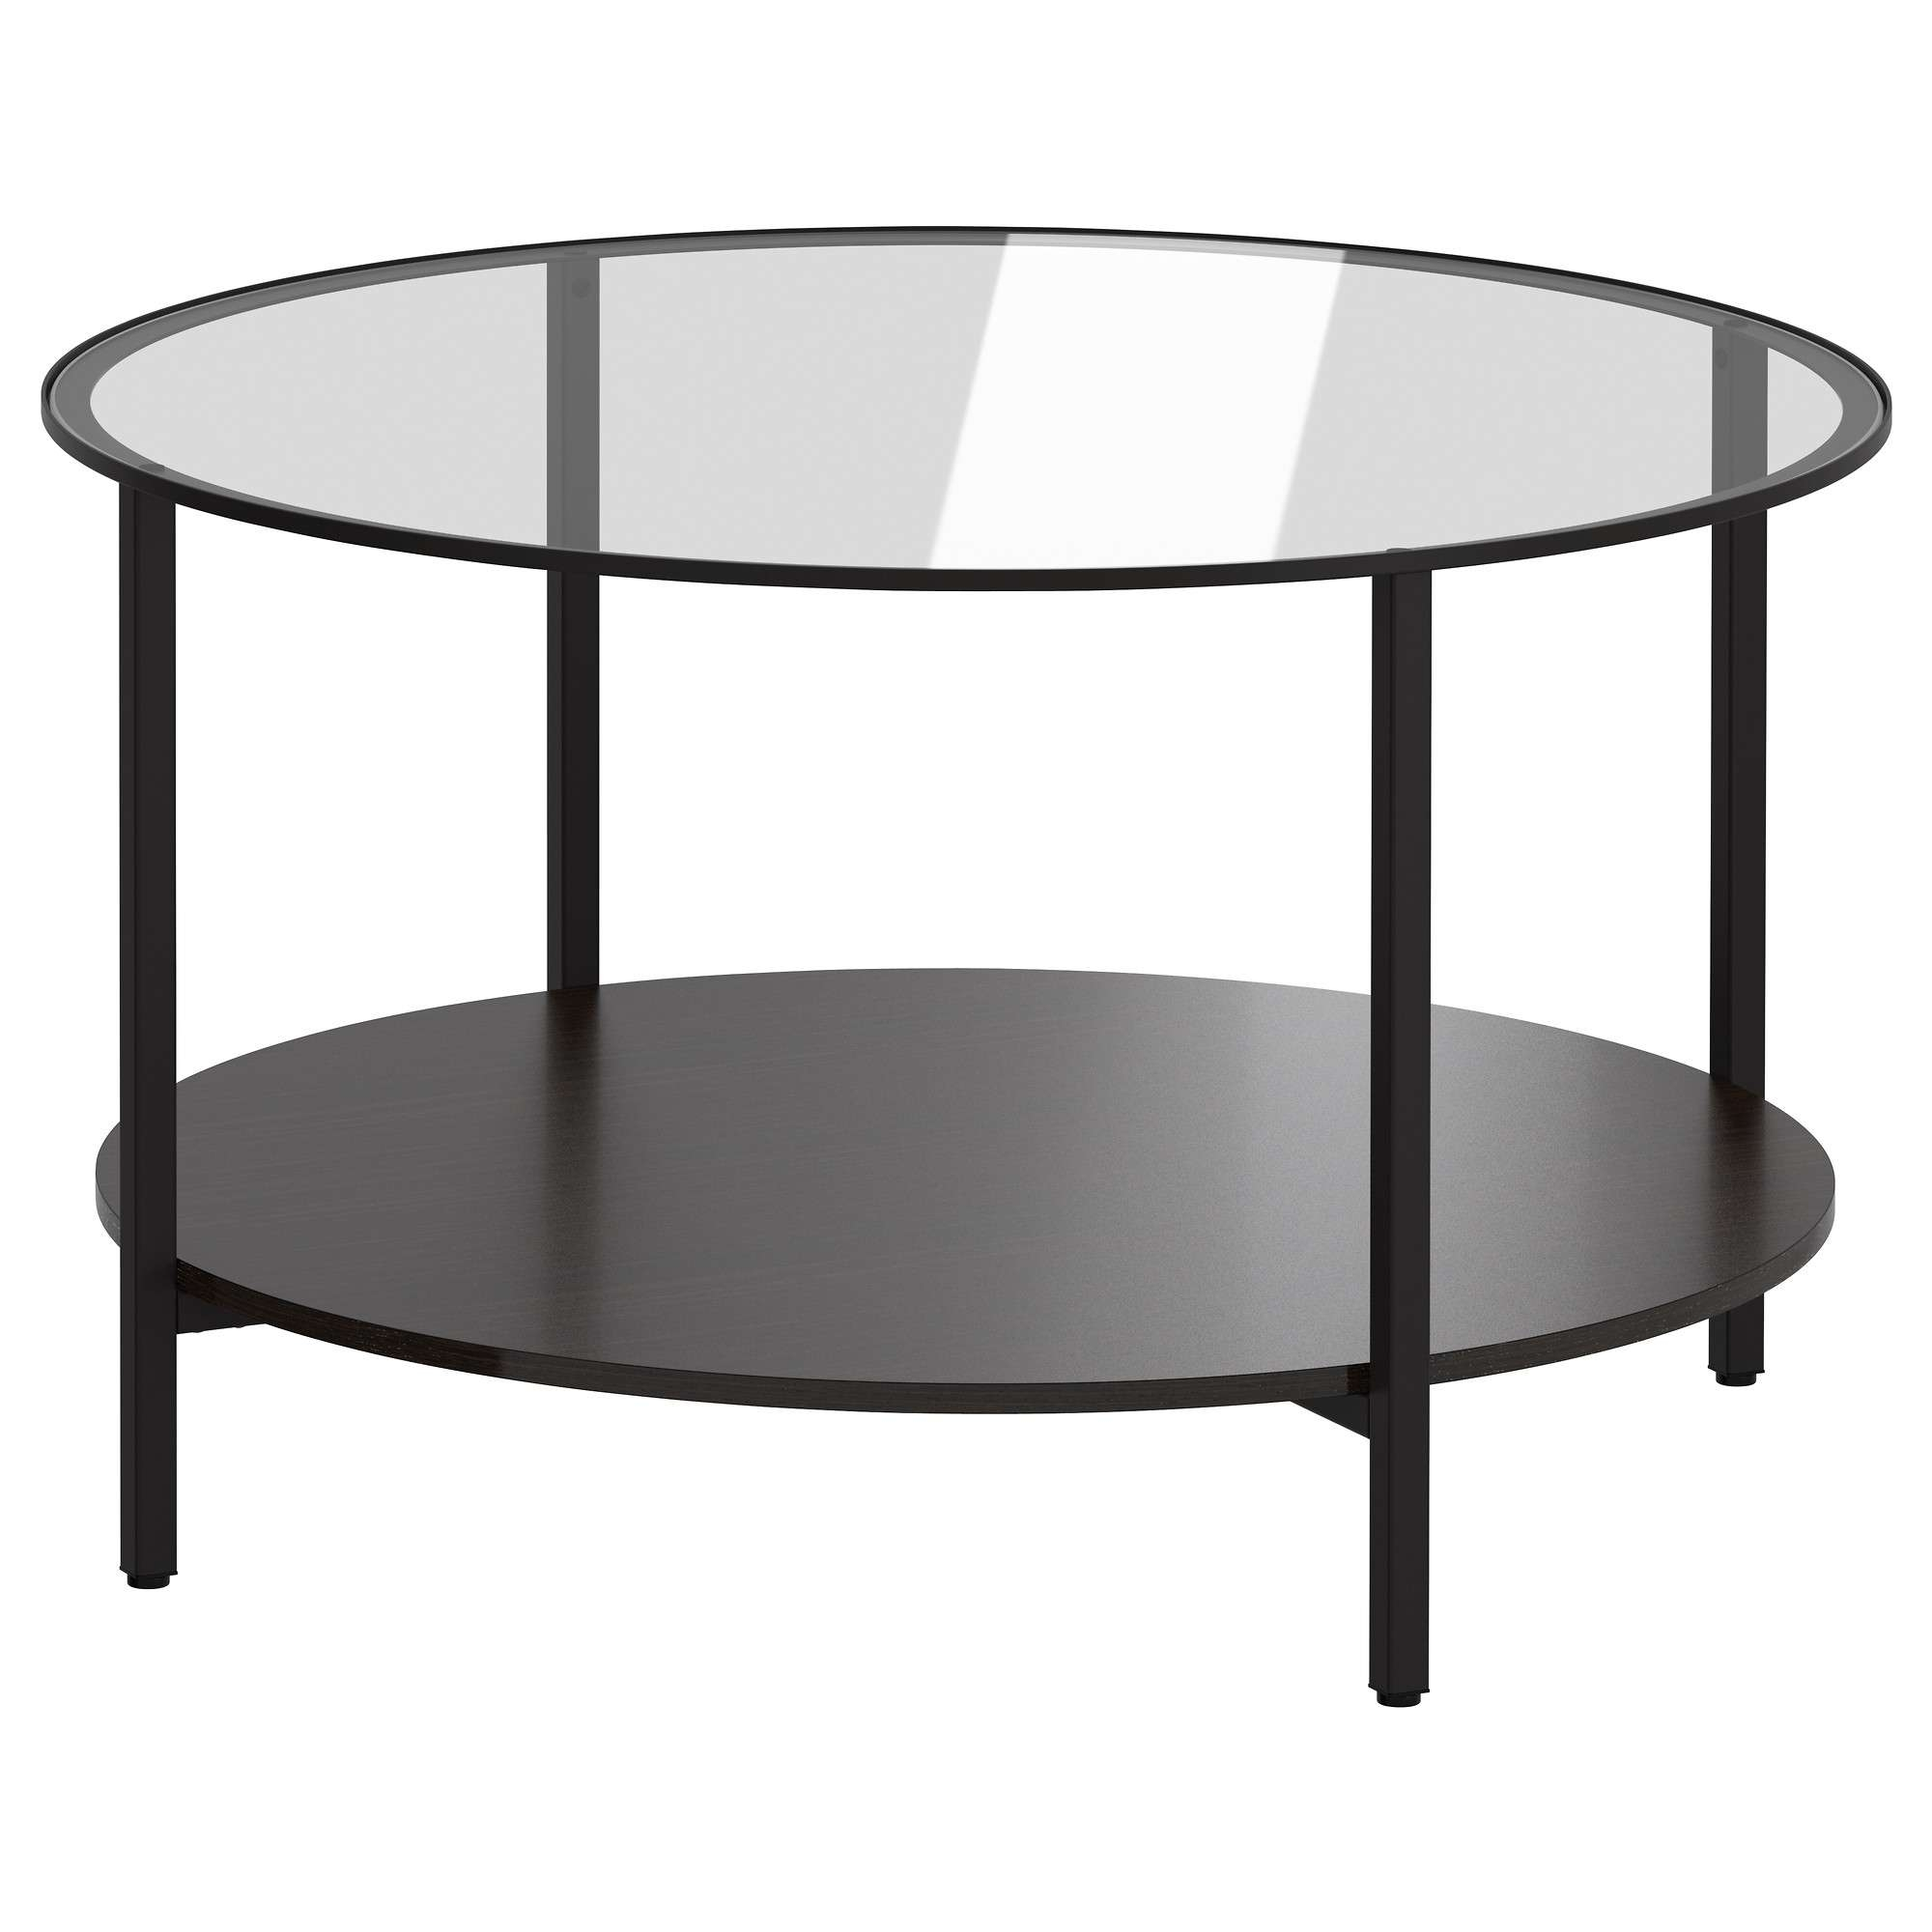 Vittsjö Coffee Table – Black Brown/glass – Ikea Intended For 2018 Circular Glass Coffee Tables (View 18 of 20)